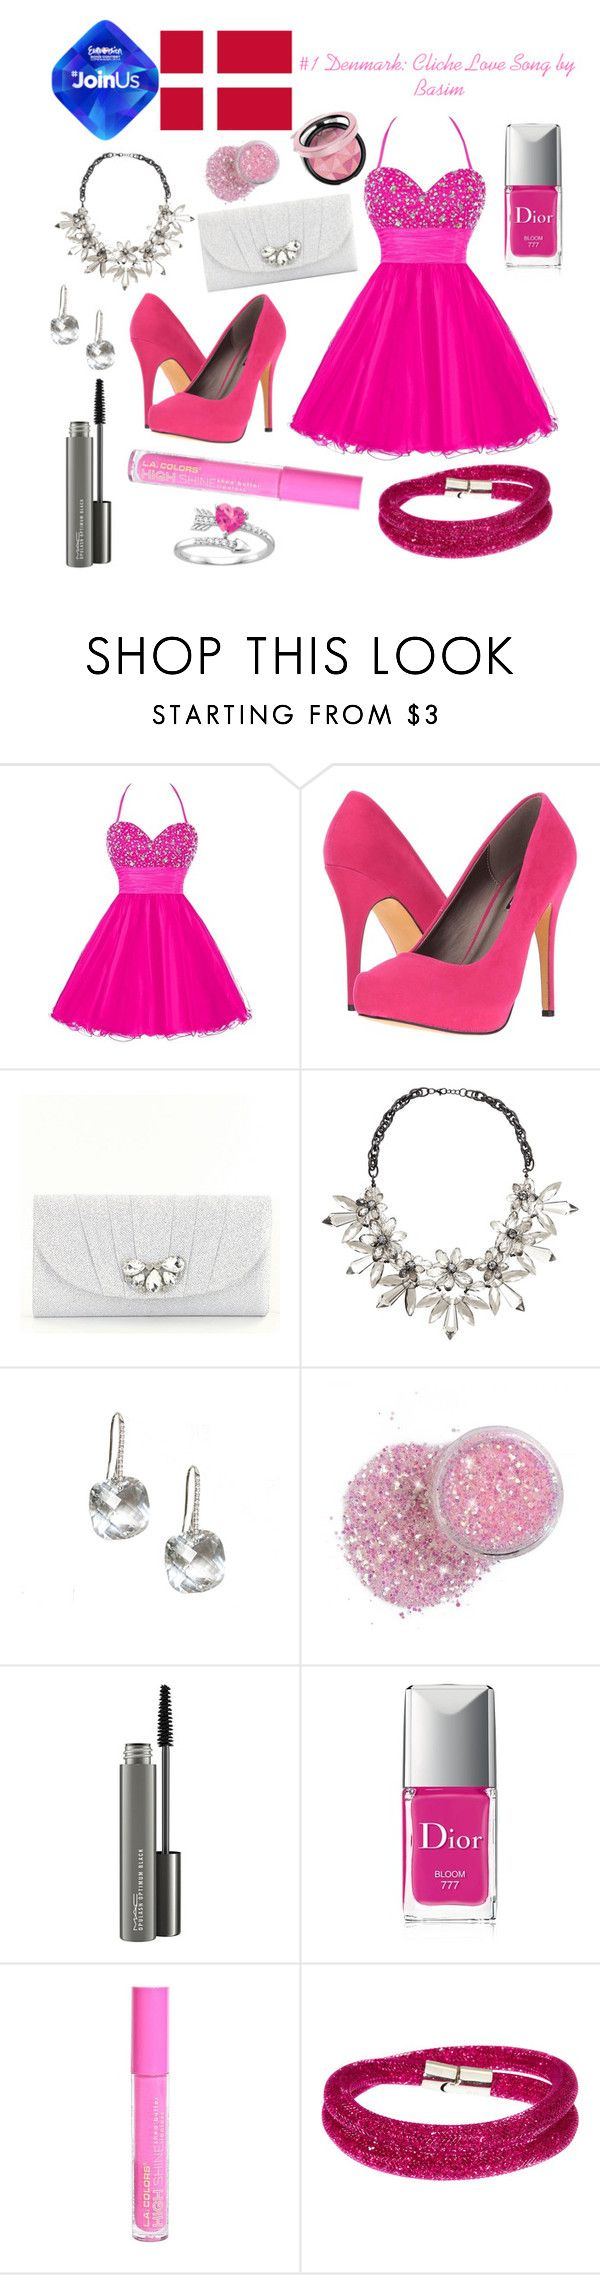 """Denmark Eurovision 2014"" by grace-buerklin ❤ liked on Polyvore featuring Michael Antonio, Kate Landry, John Lewis, MAC Cosmetics, Christian Dior, L.A. Colors, Swarovski and Eurovision2014"